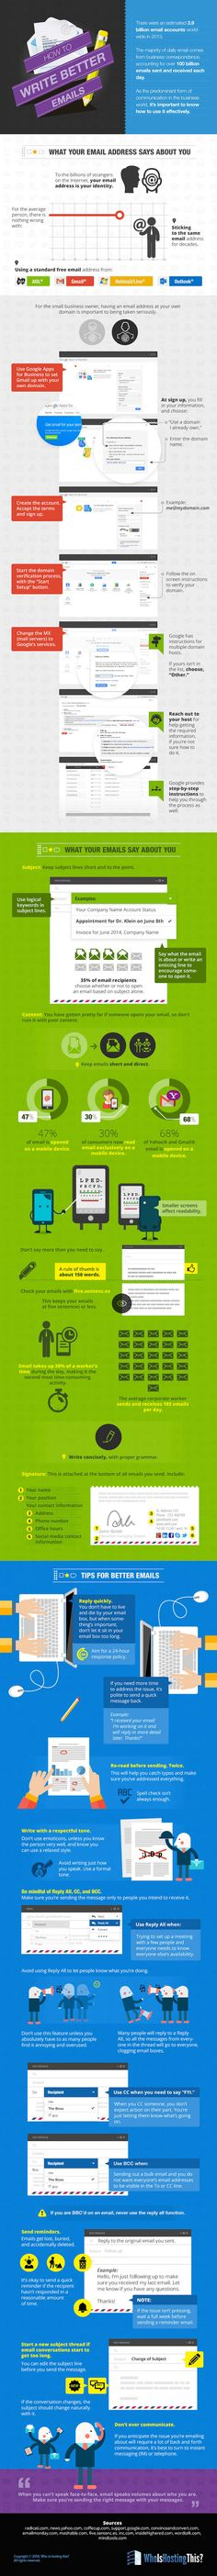 How to Write Better Emails [Infographic], via @HubSpot